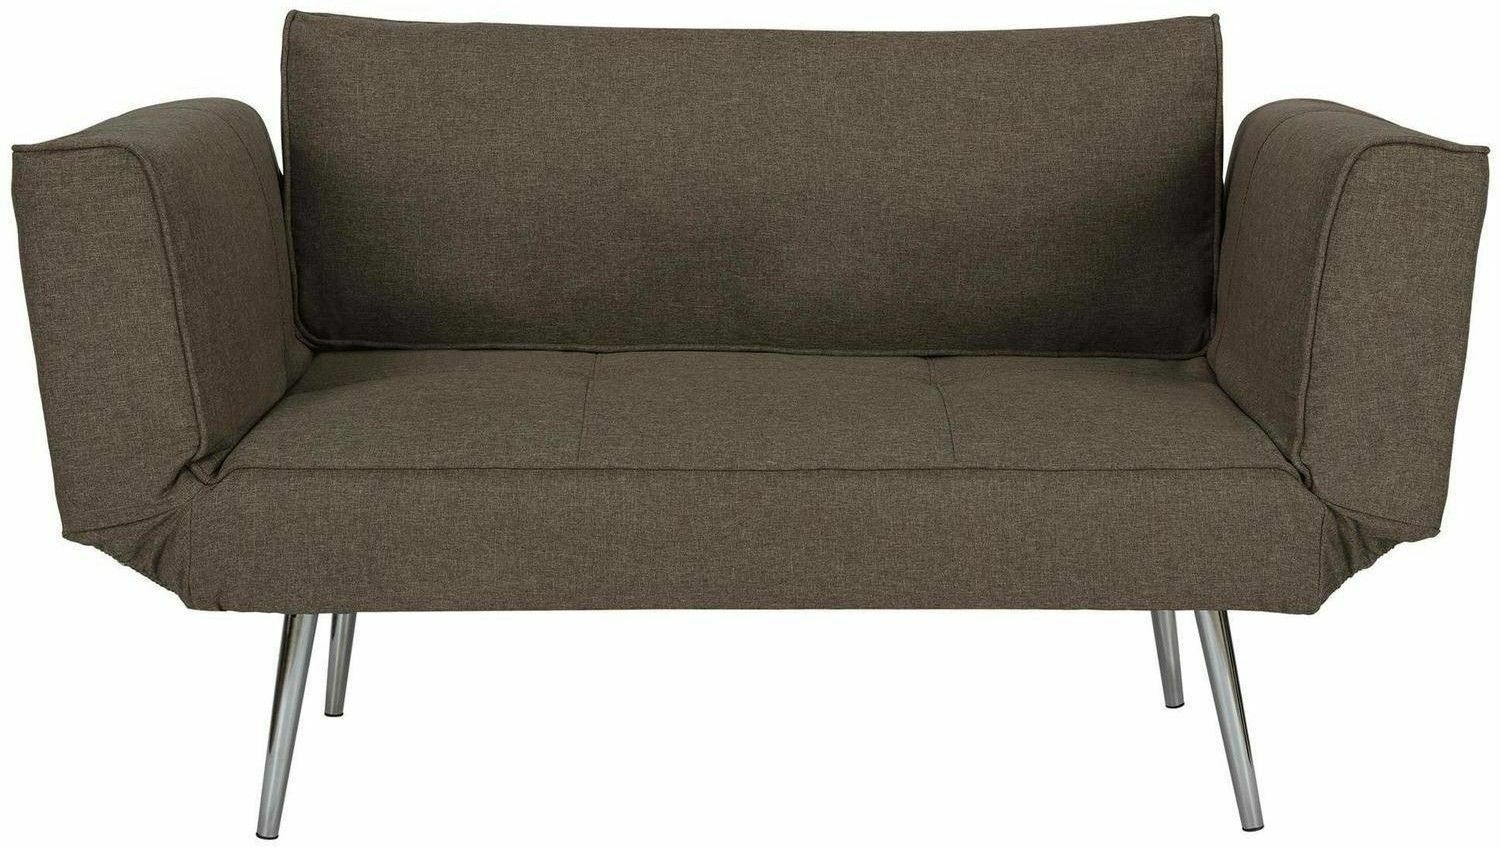 Details about Futon Sofa Bed Sleeper Convertible Loveseat Couch Chair Gray  Home Office Guest